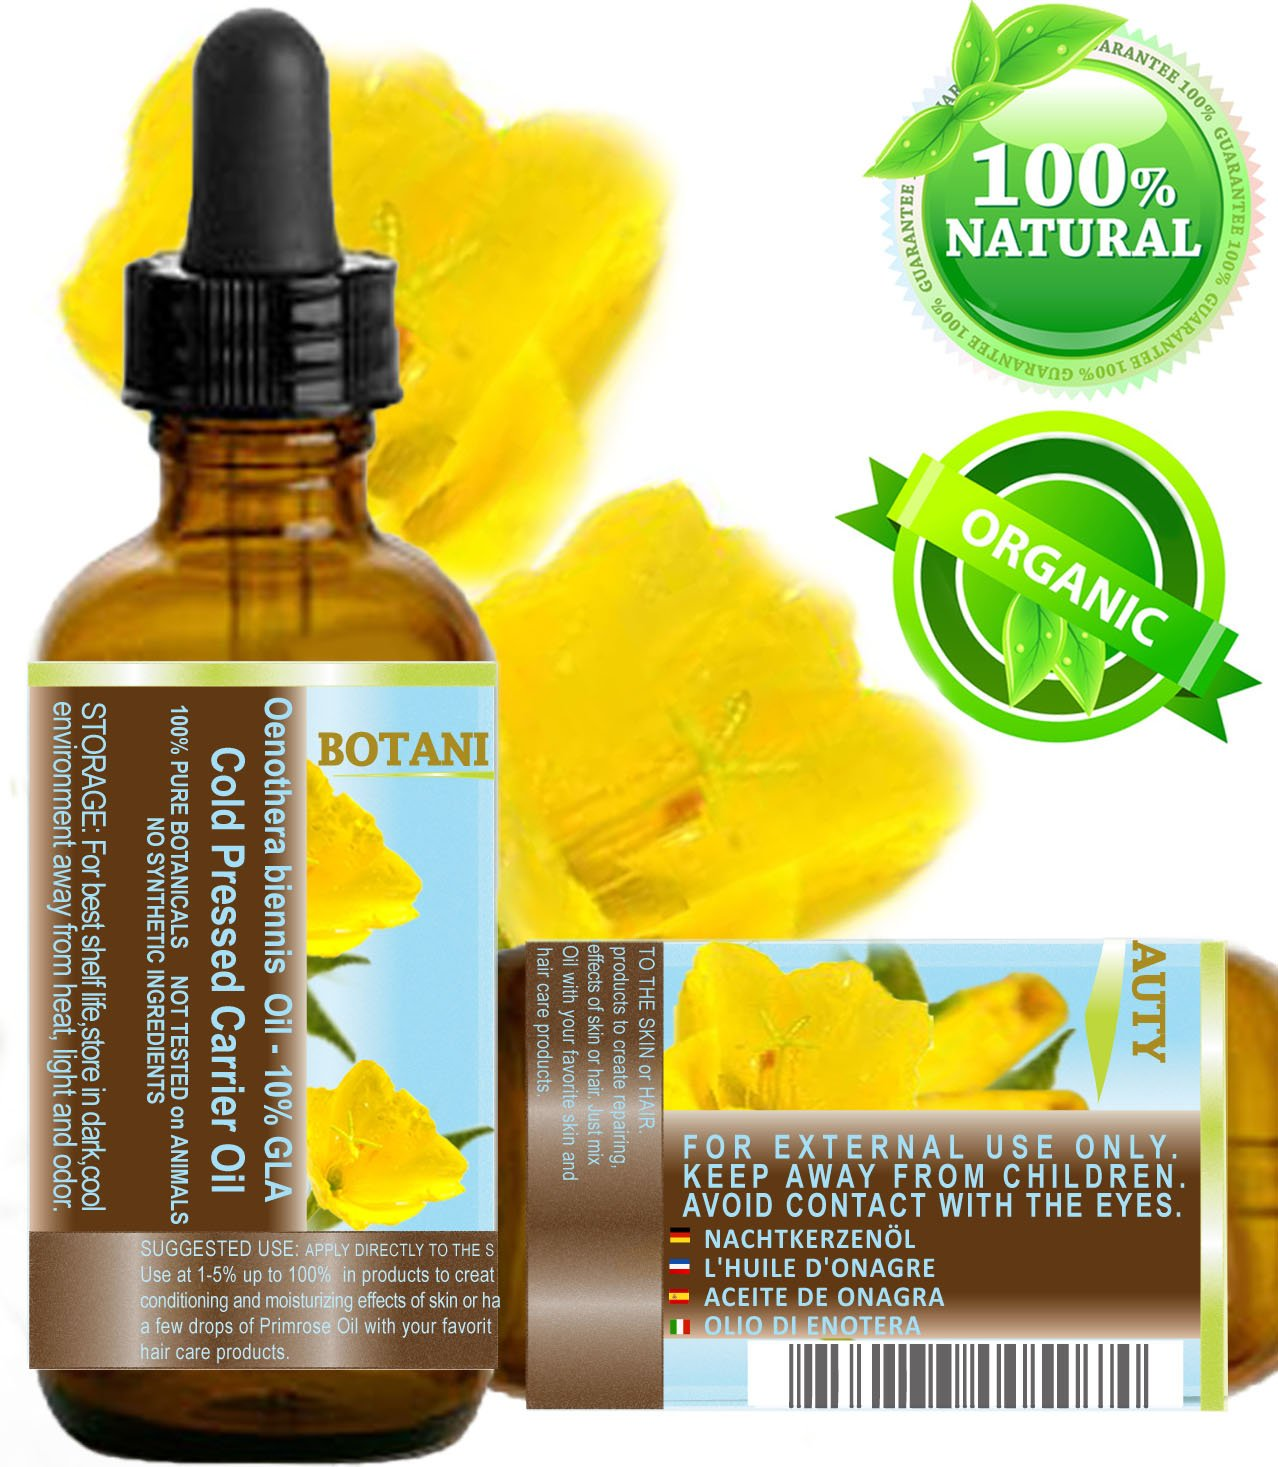 100% Pure / Natural / Undiluted / Refined / Cold Pressed Carrier Oil. 1 Fl.oz.- 30 ml. Rich antioxidant to rejuvenate and moisturize the skin and hair.